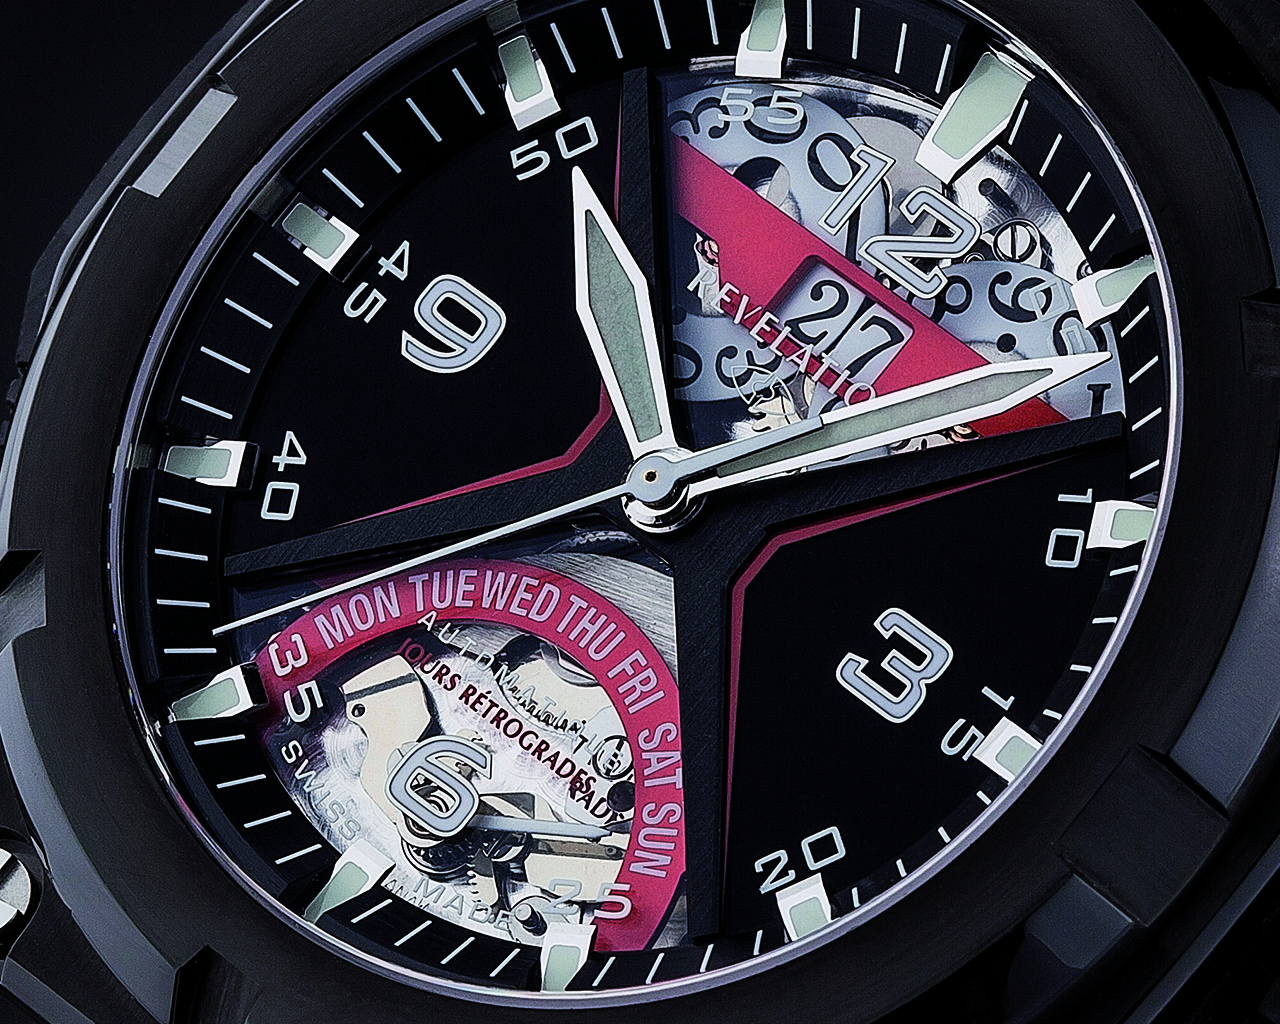 anteprima-baselworld-2015-revelation-r07-legend-magical-watch-dial_0-100_2